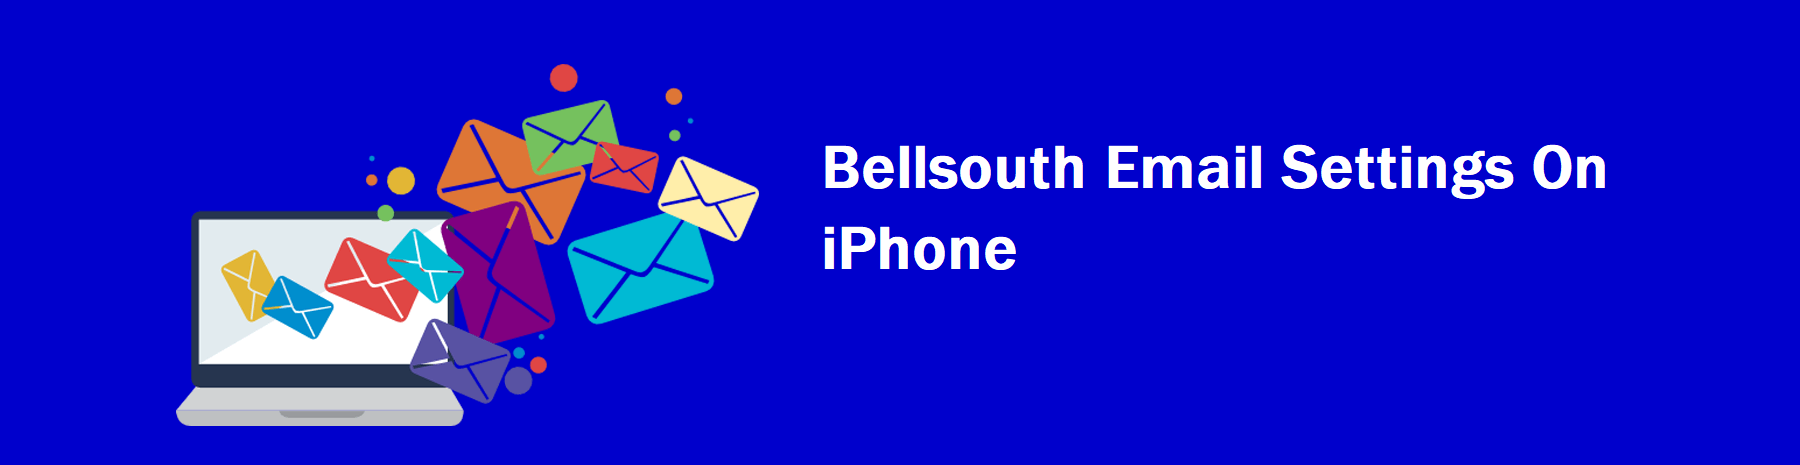 Bellsouth Email Settings On iPhone